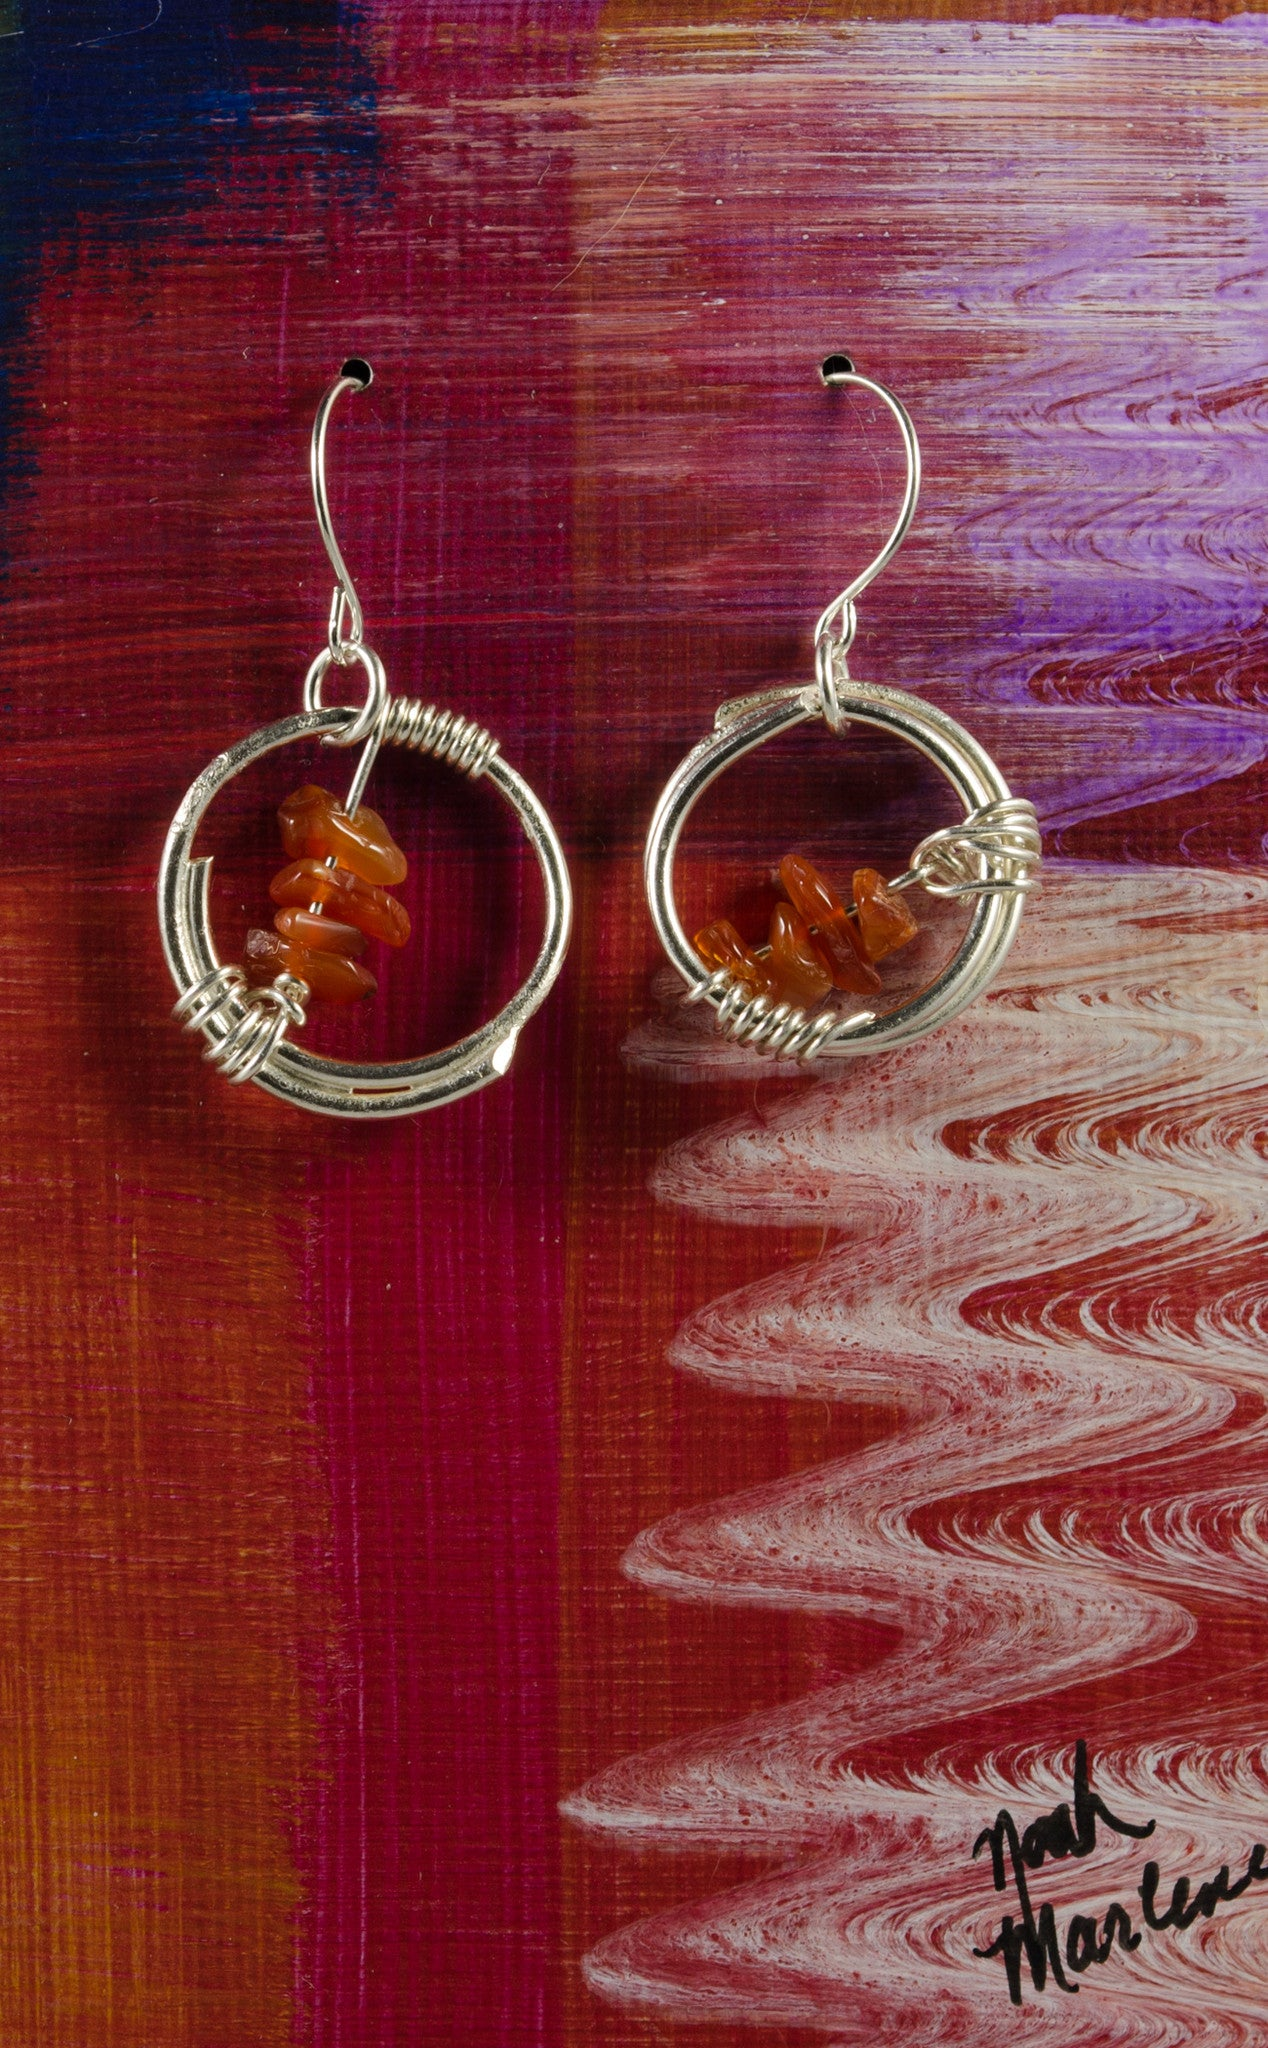 e73786a97 Handmade Sterling Silver Circle Wire Wrapped Earrings with Carnelian -  Silver Spirit Design